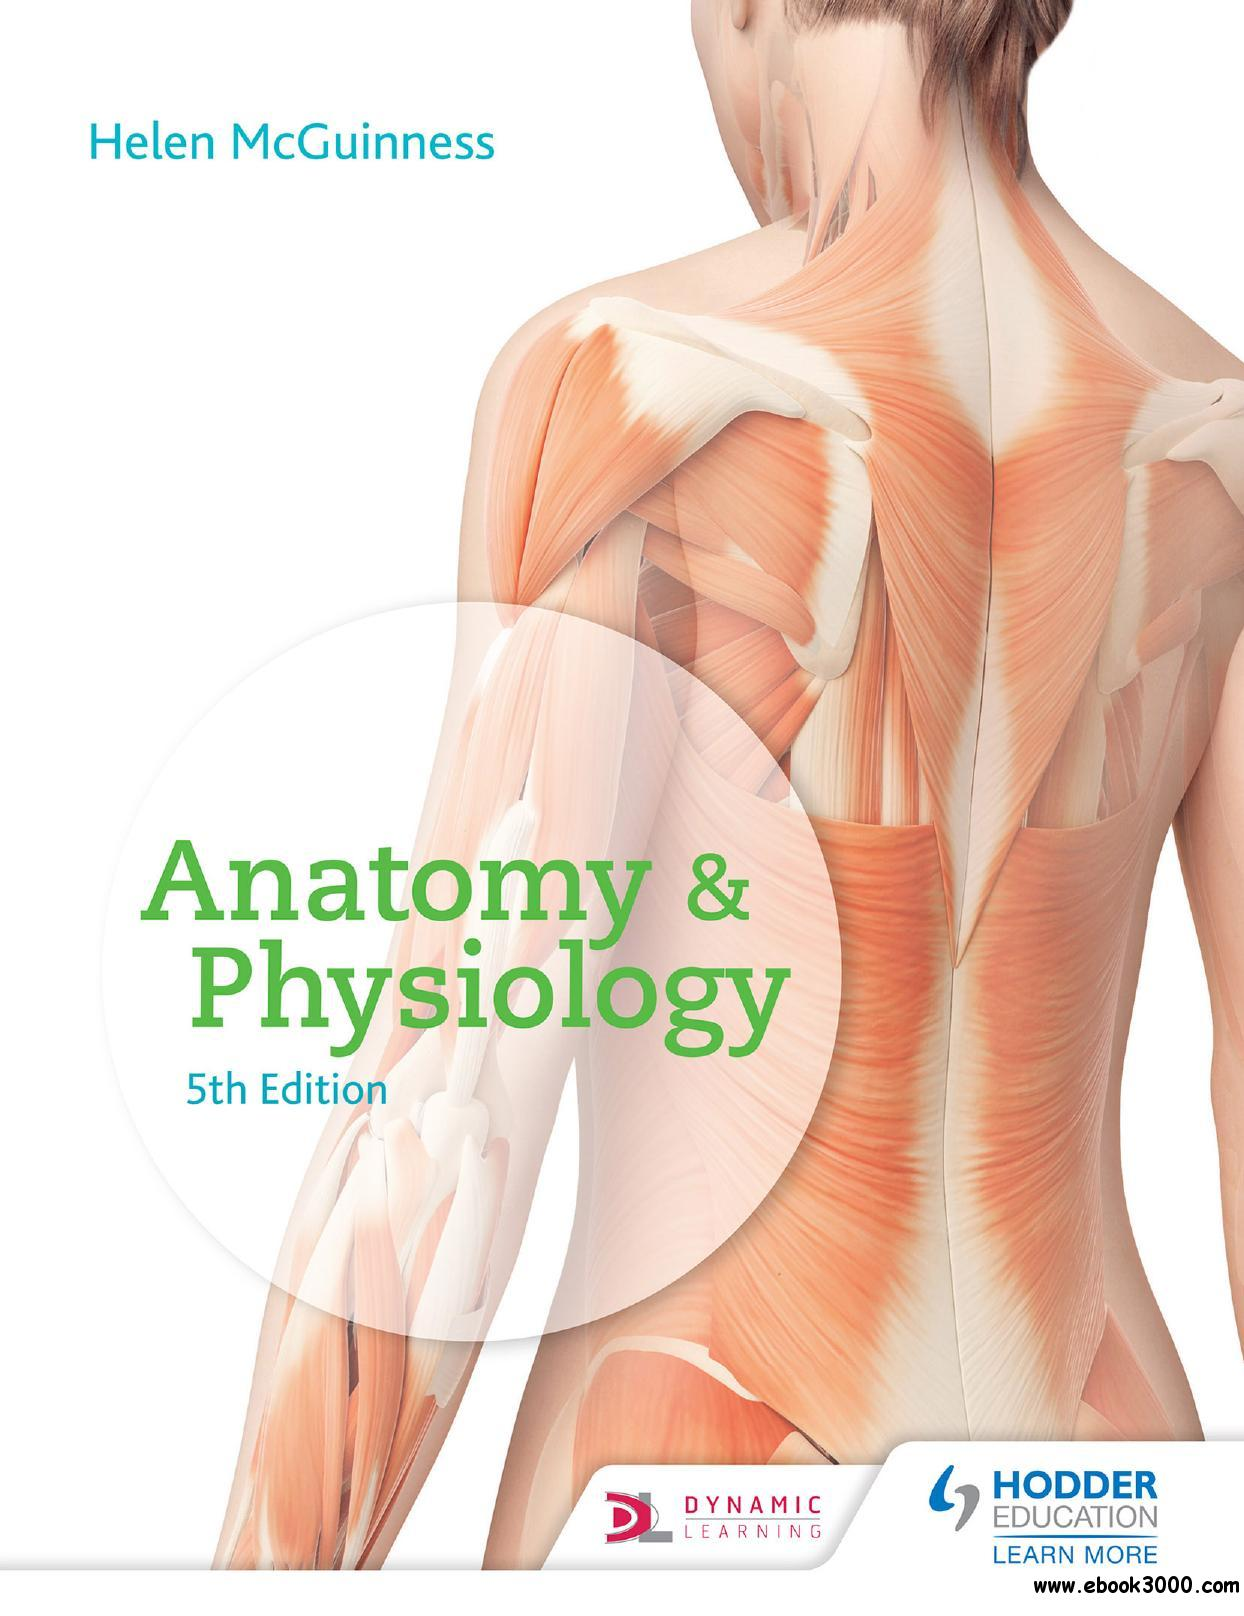 Anatomy & Physiology, 5th Edition